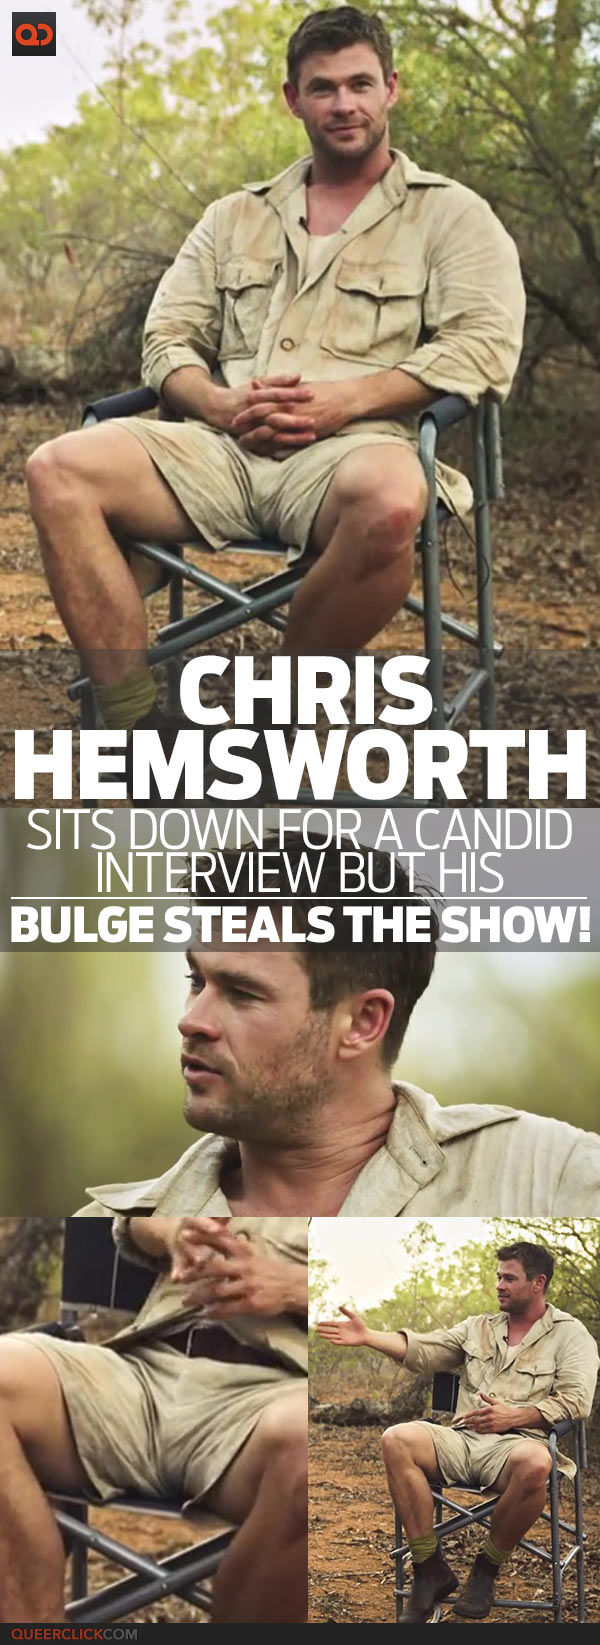 Chris Hemsworth Sits Down For A Candid Interview But His Bulge Steals The Show!